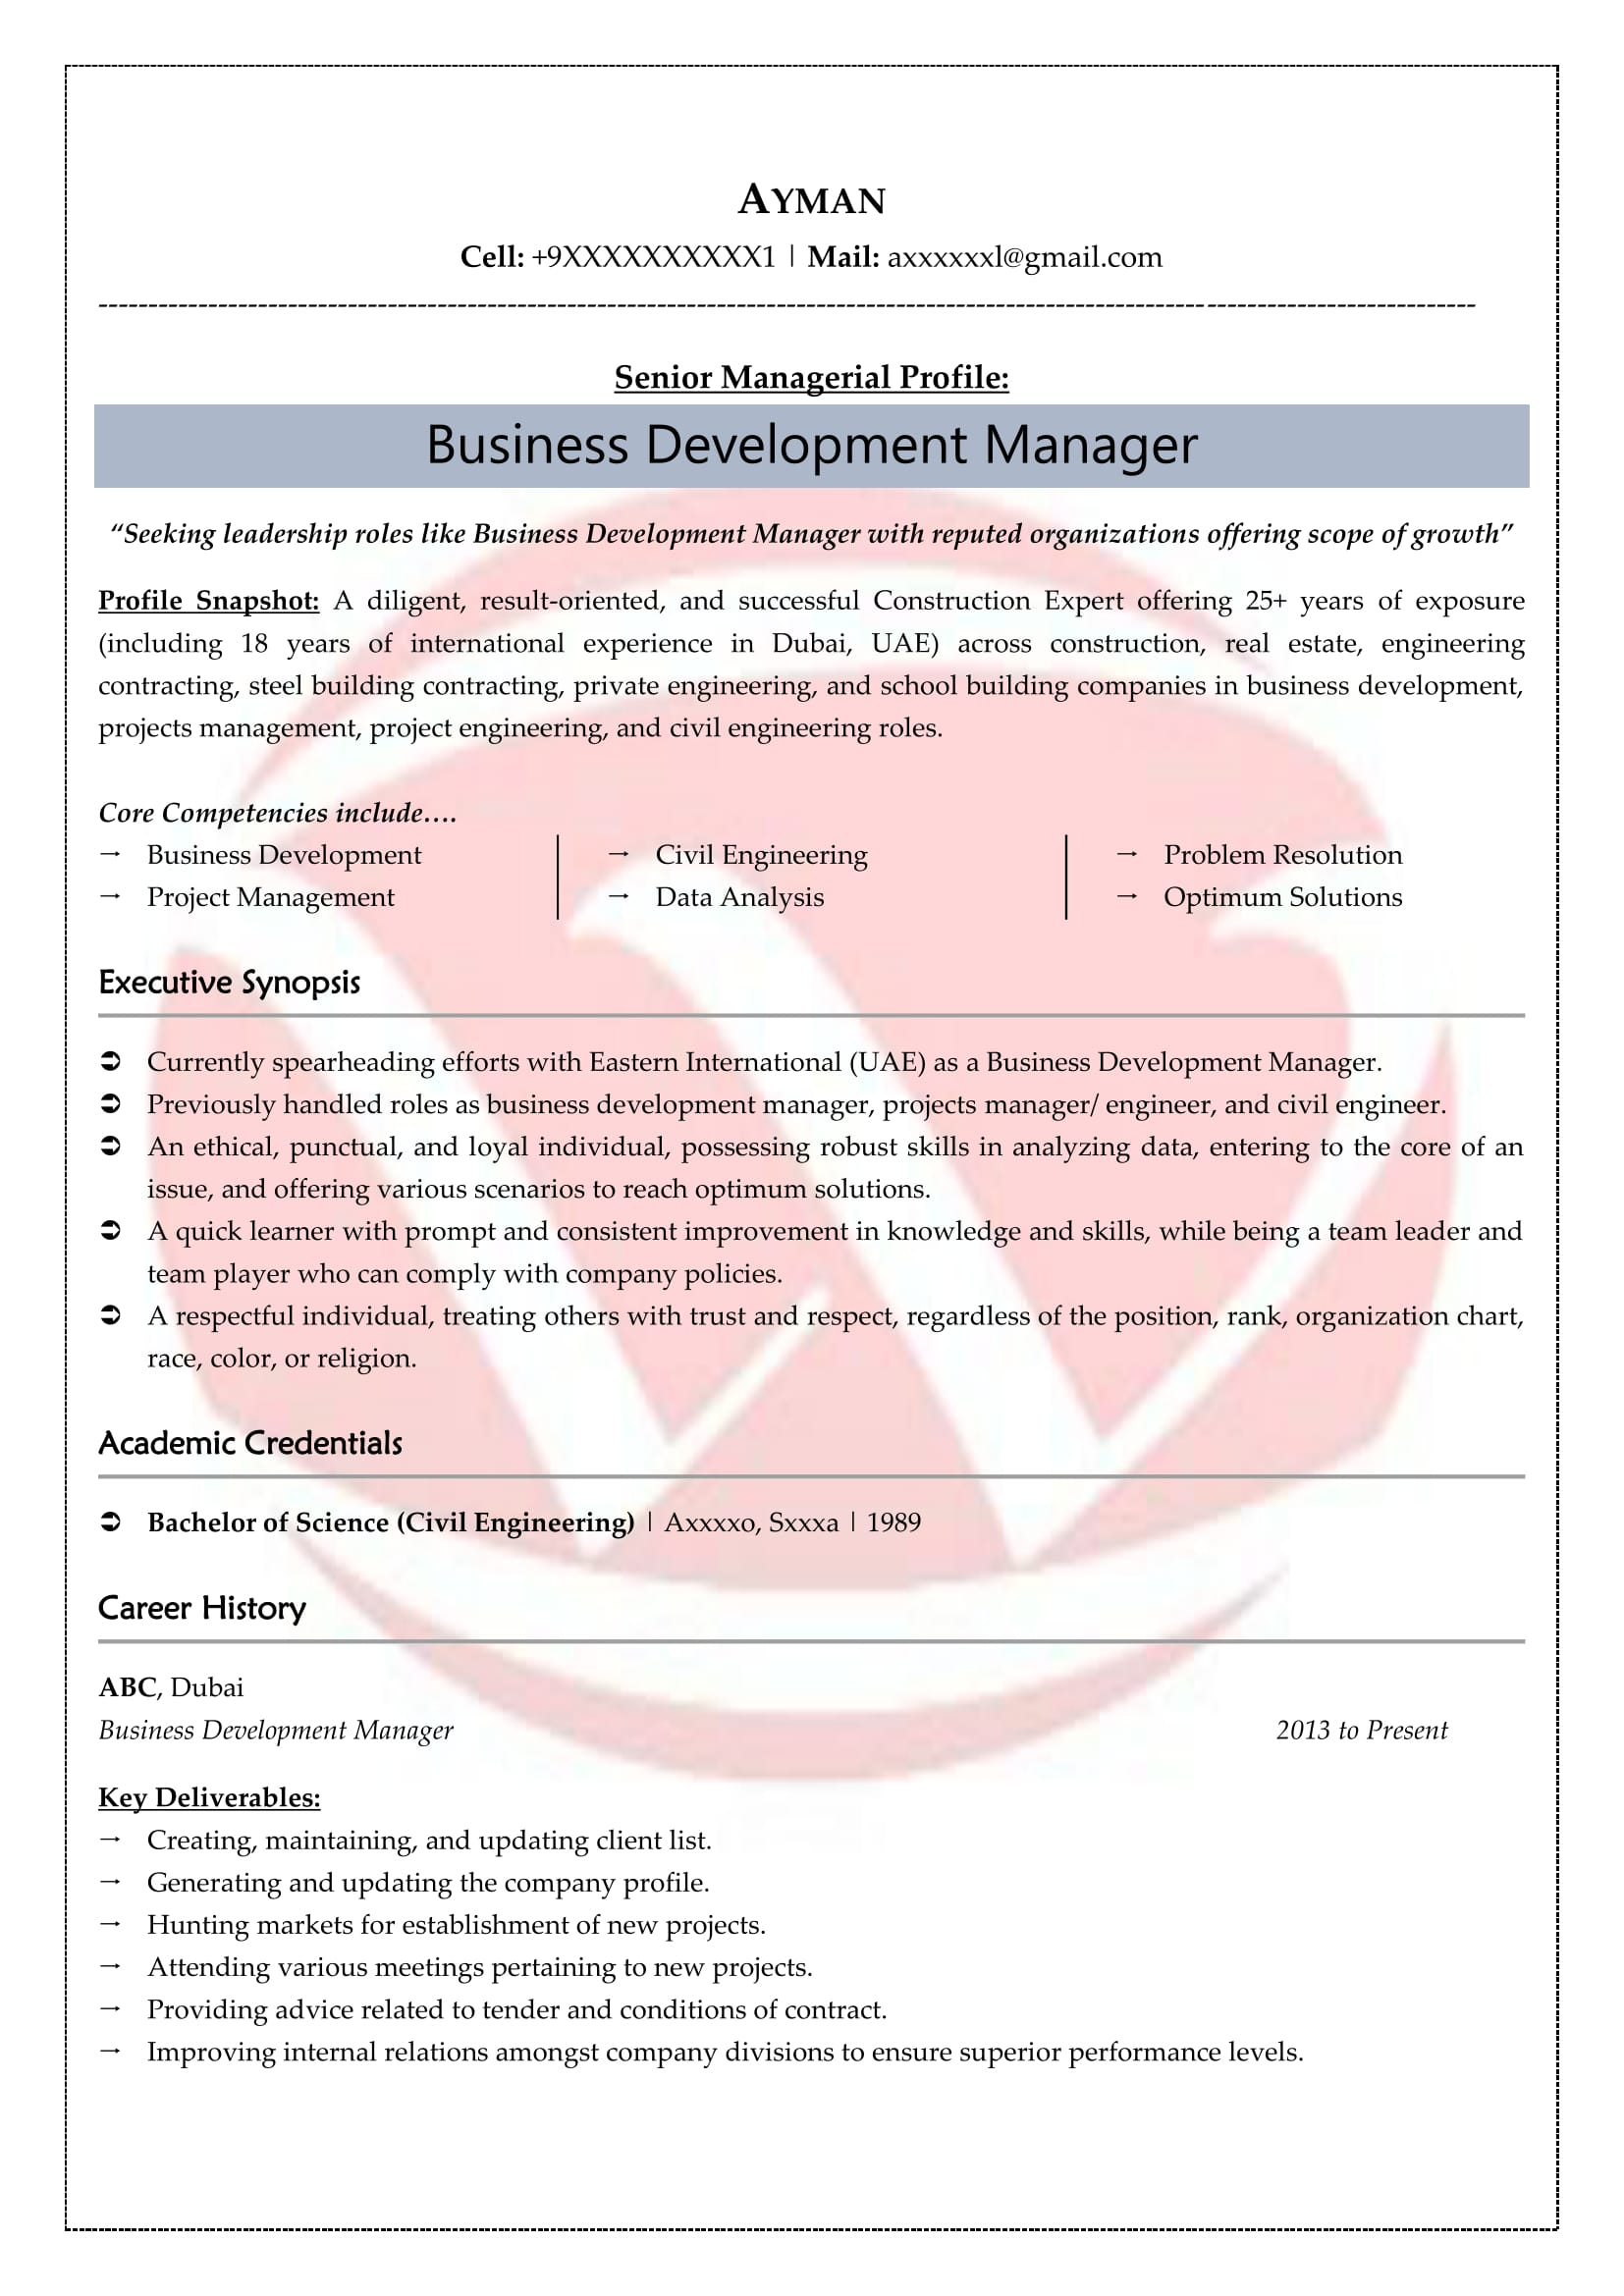 Bank Sales Executive Resume Corporate Sales Manager Sample Resumes Download Resume